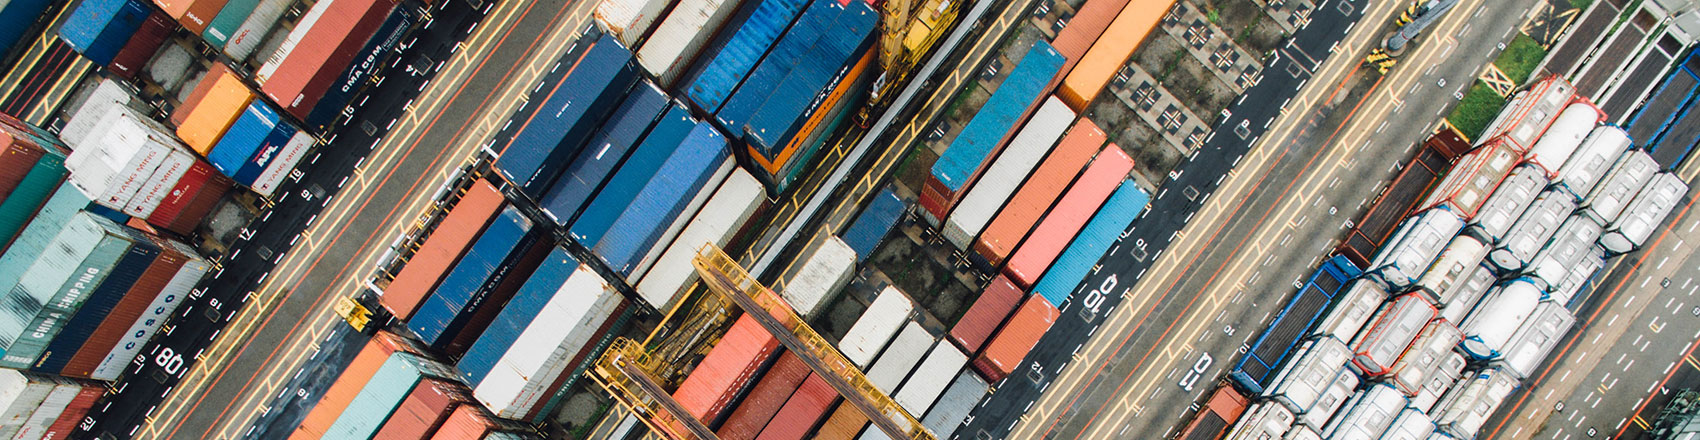 An aerial shot of a shipping port full of shipping containers organized by row.